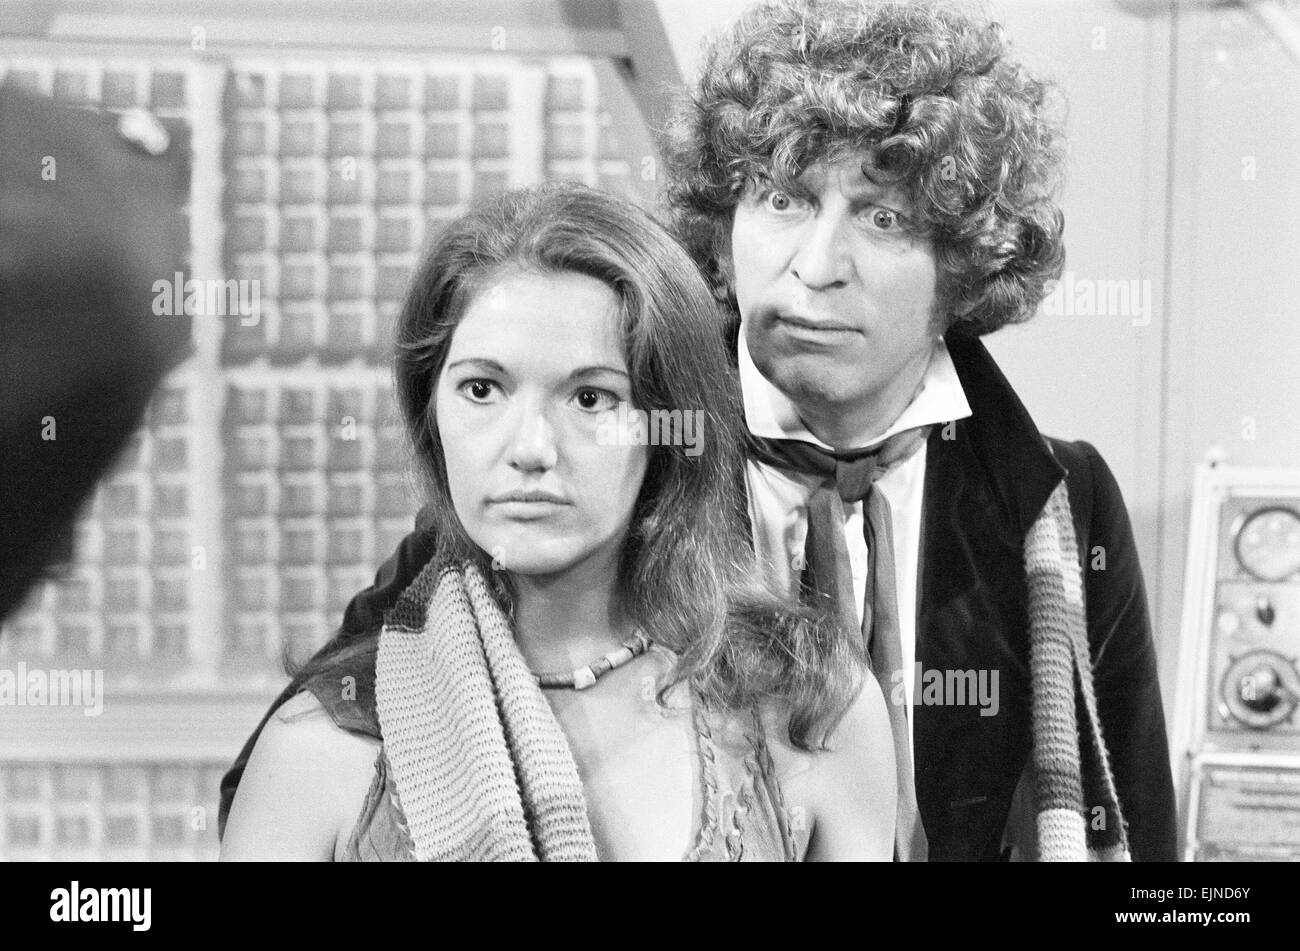 Doctor Who, actor Tom Baker - the 4th Doctor - pictured with new assistant Leela played by actress Louise Jameson, - Stock Image